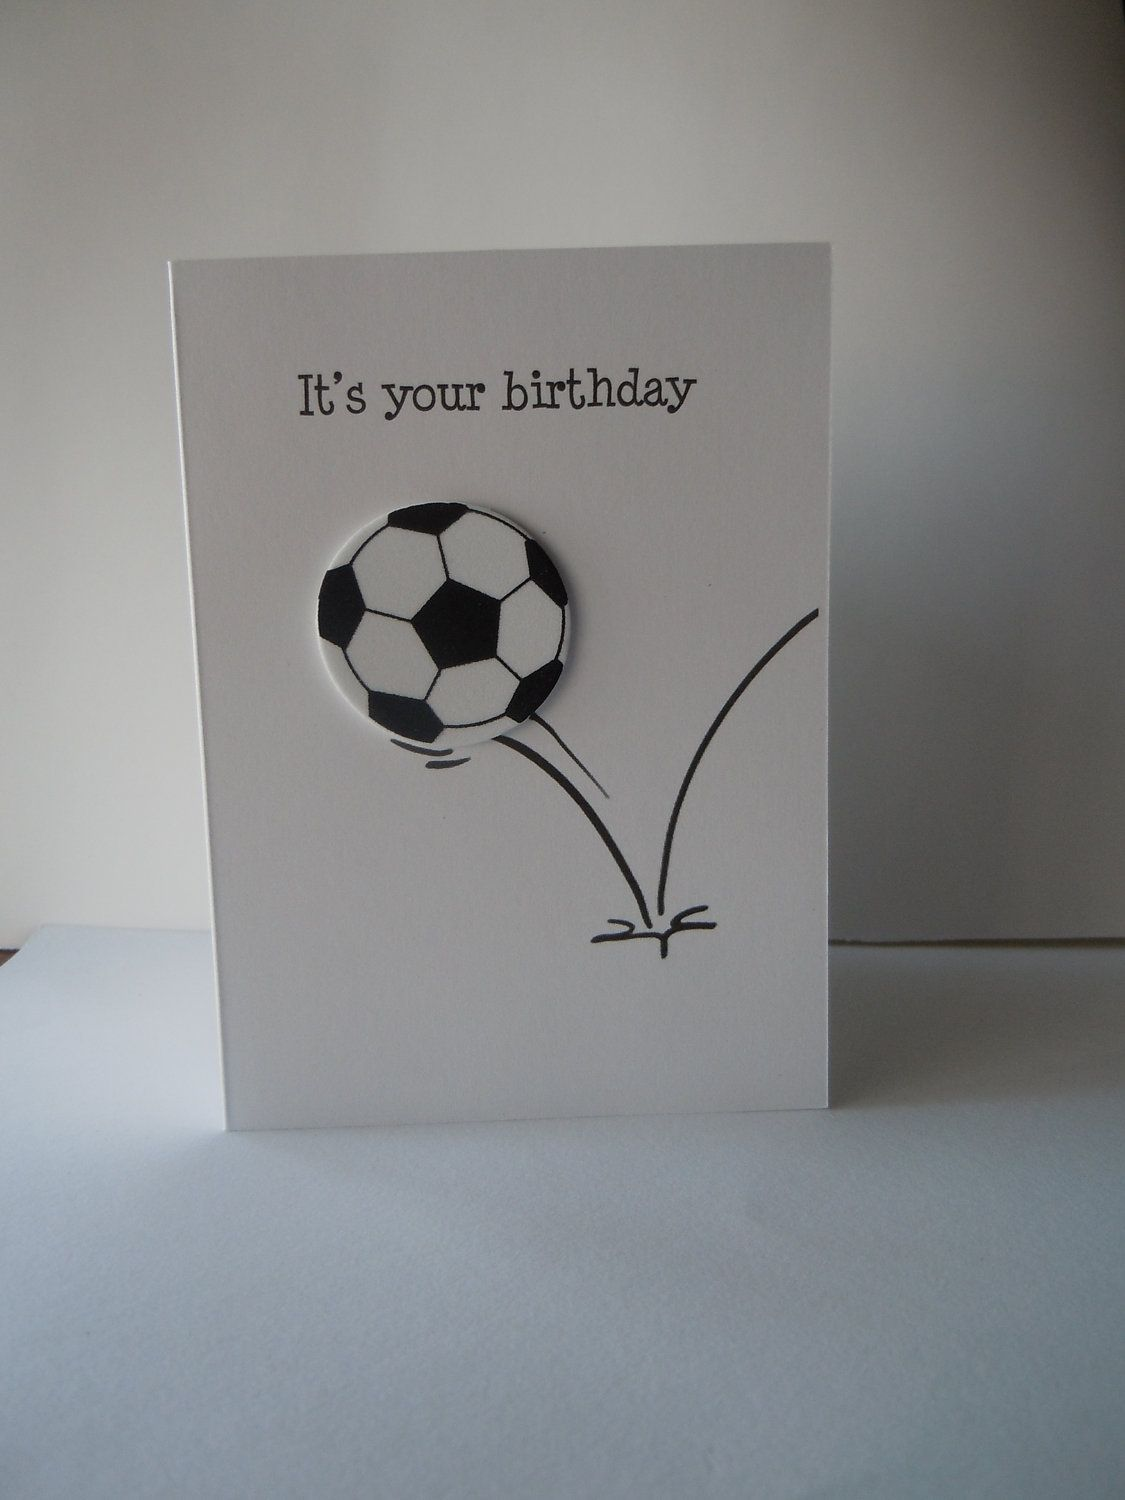 Soccer ball happy birthday handmade greeting card with white and